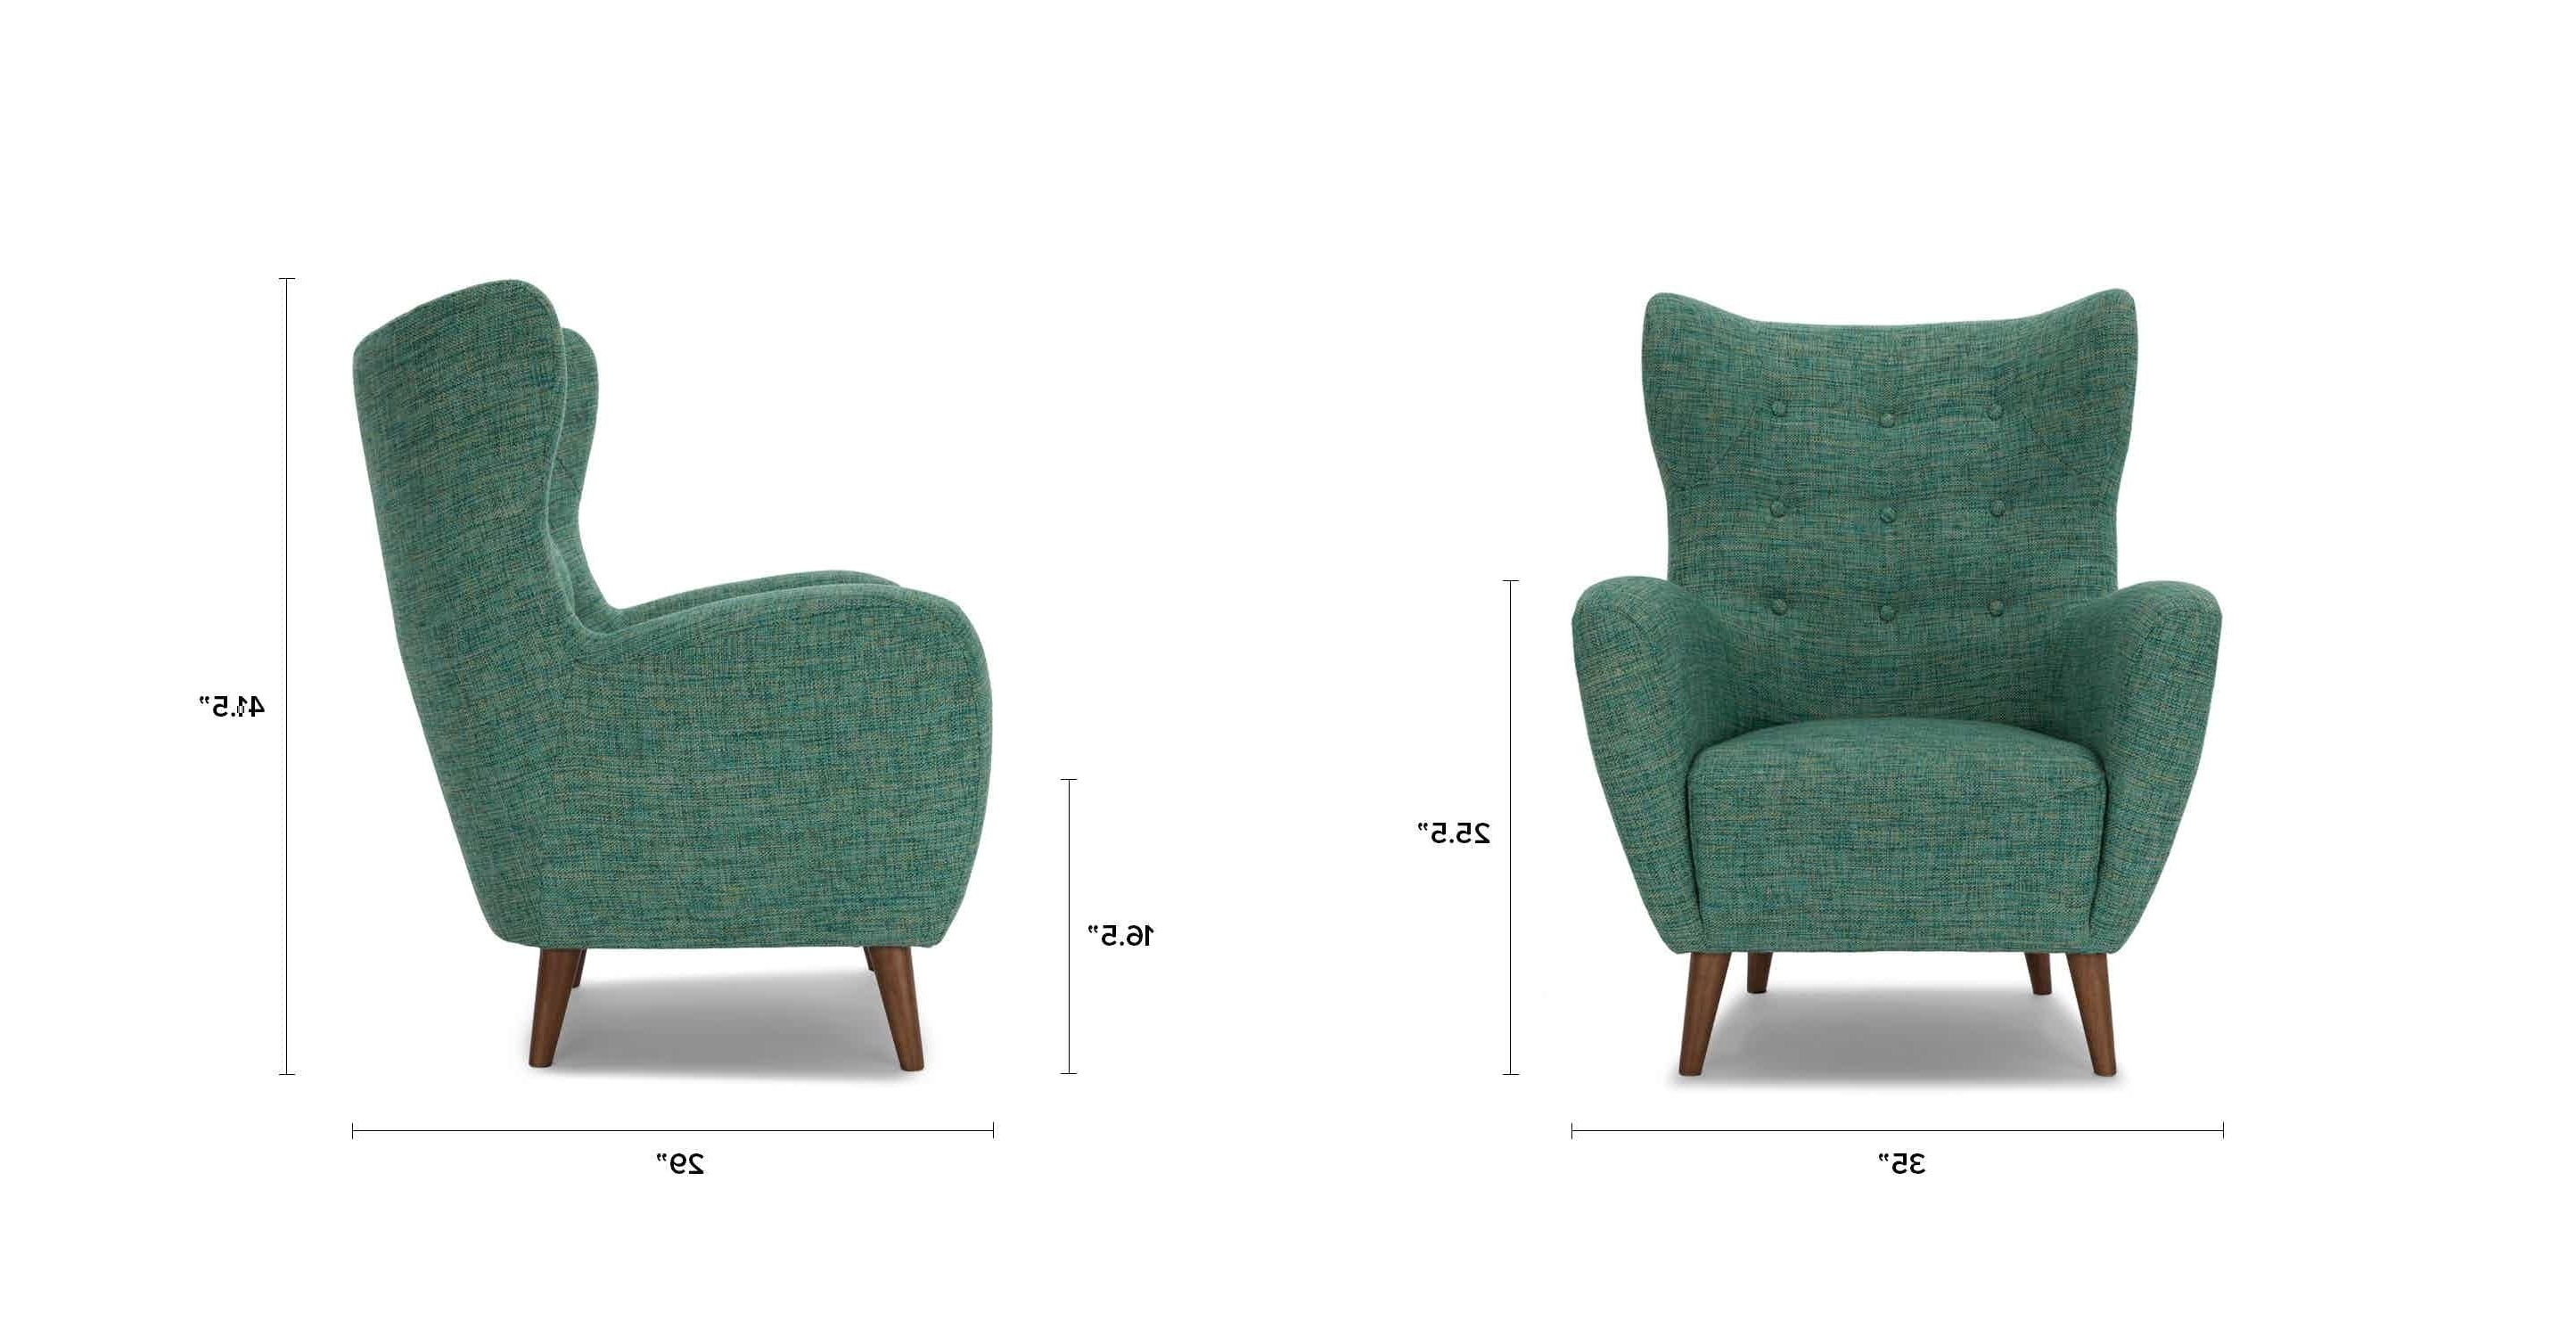 Madison Avenue, Armchairs And Upholstery Throughout Mod Ii Arm Chairs (View 16 of 20)